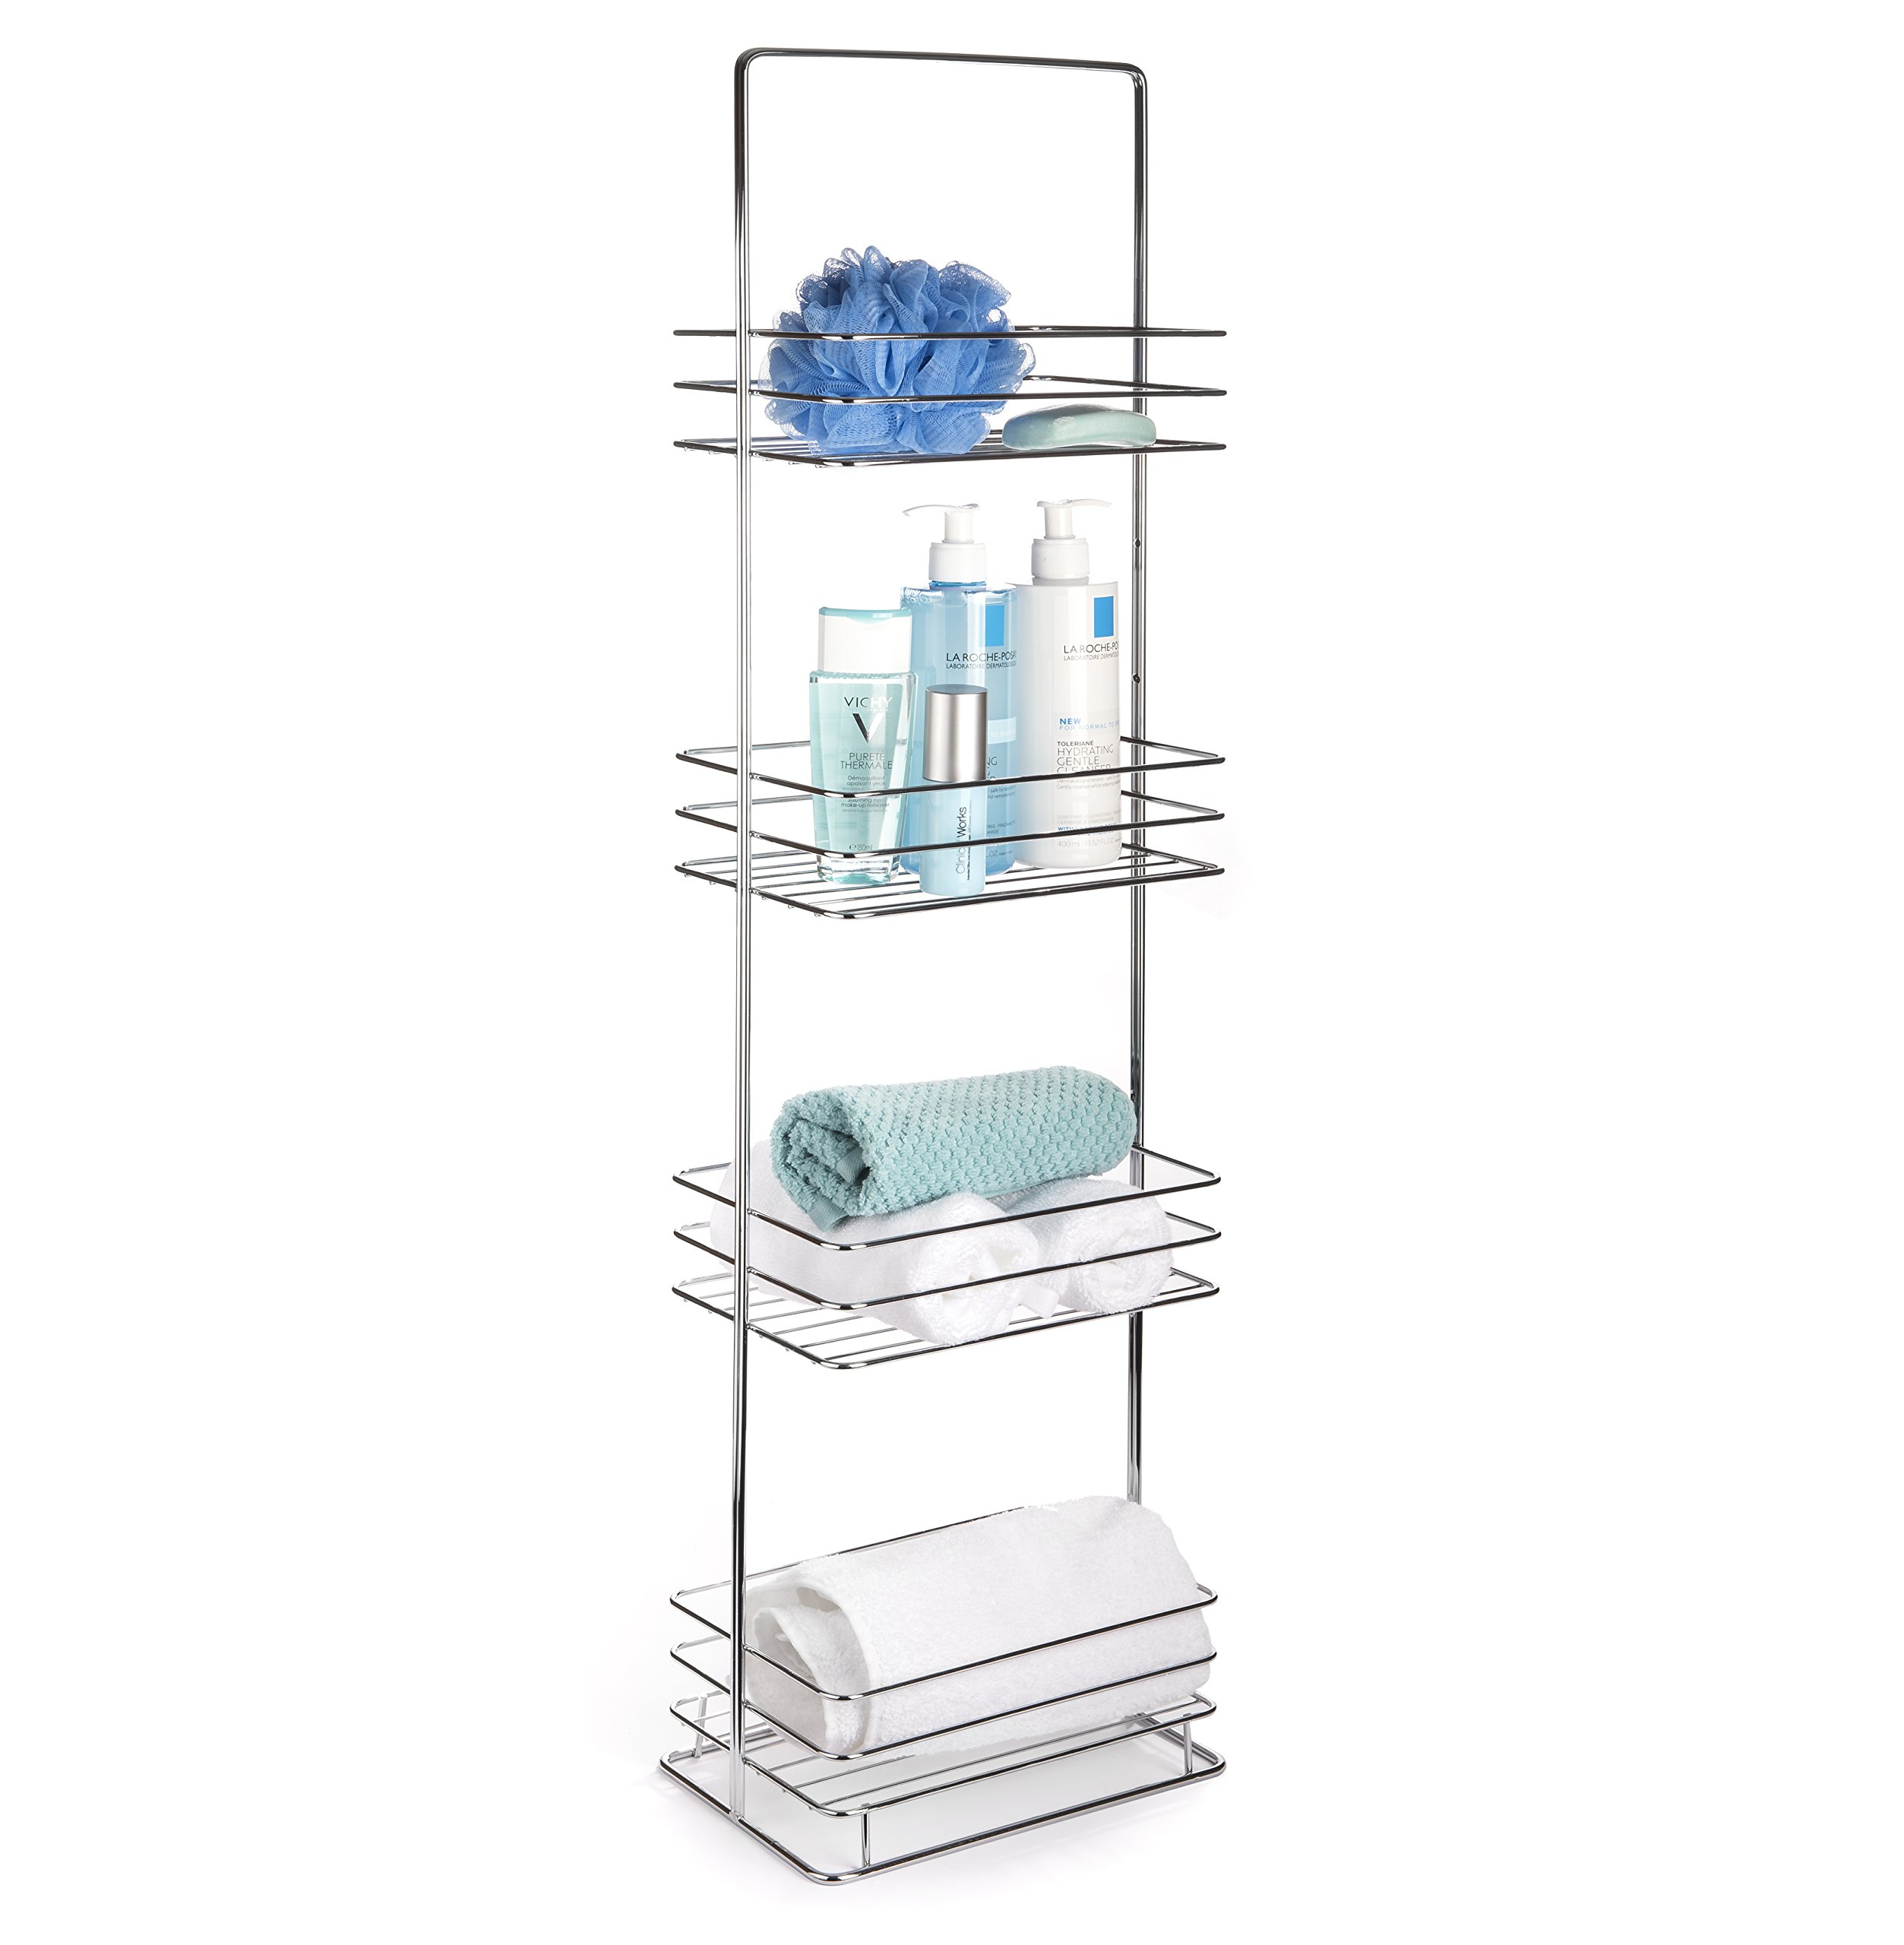 AMG and Enchante Accessories Free Standing Bathroom Spa Tower Storage Caddy, FC100002 CHR, Chrome